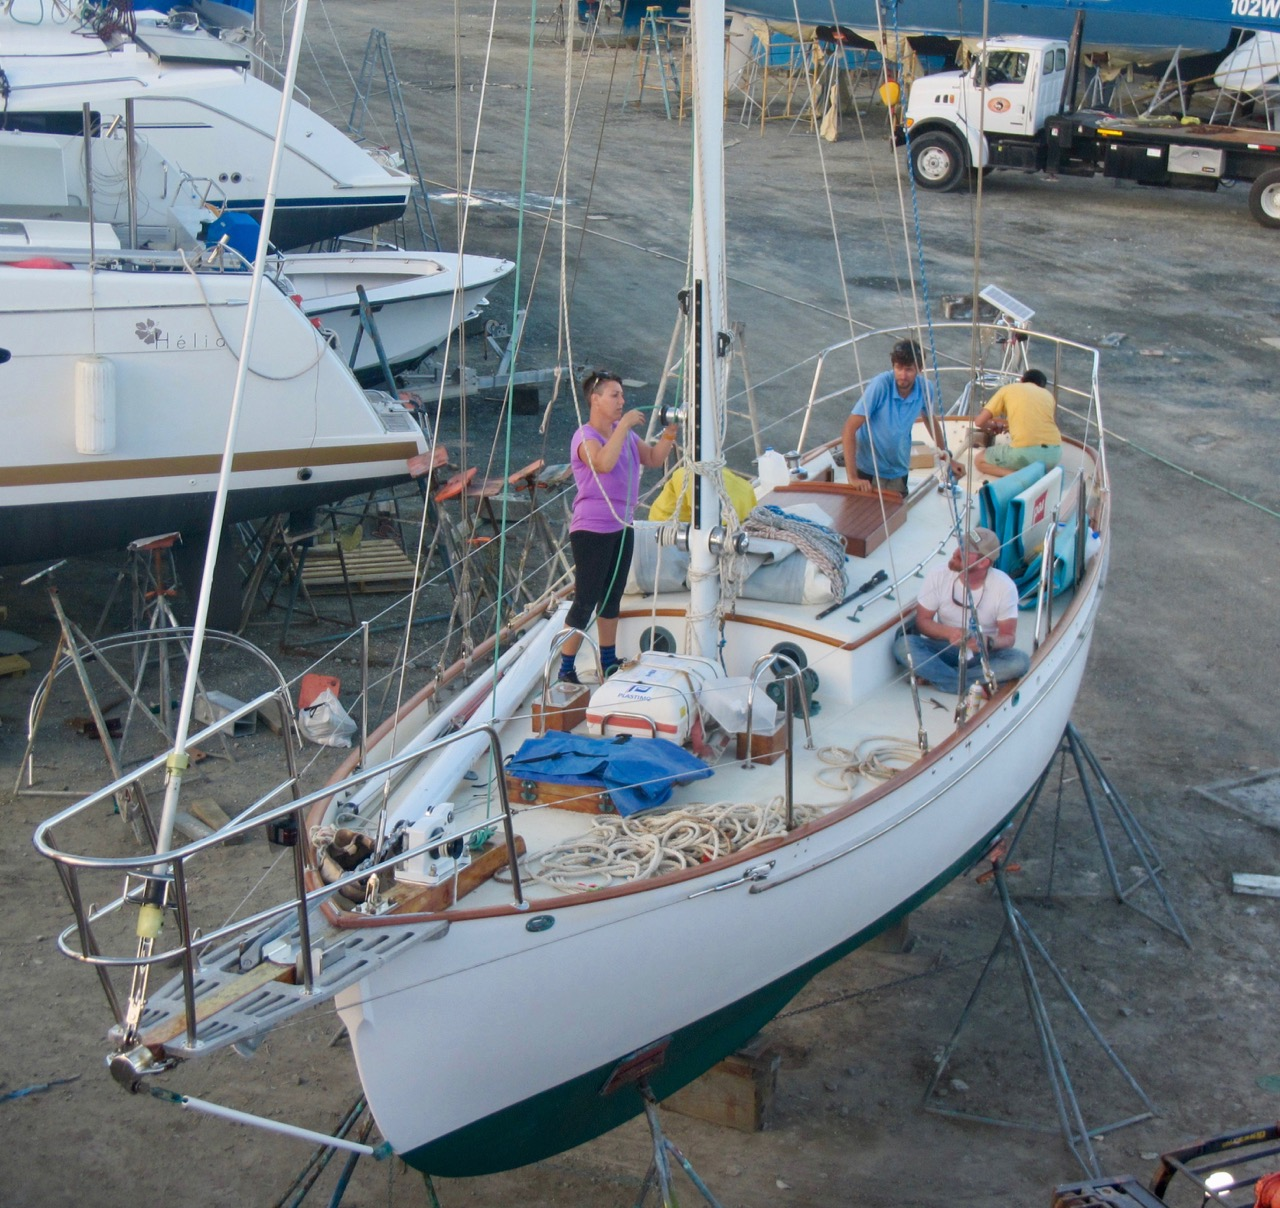 Paul Exner's hand-built SV Solstice (from a bare Cape George 31 hull) is refit in the British Virgin Islands following massive destruction caused by Hurricane IRMA's direct hit on the territory.